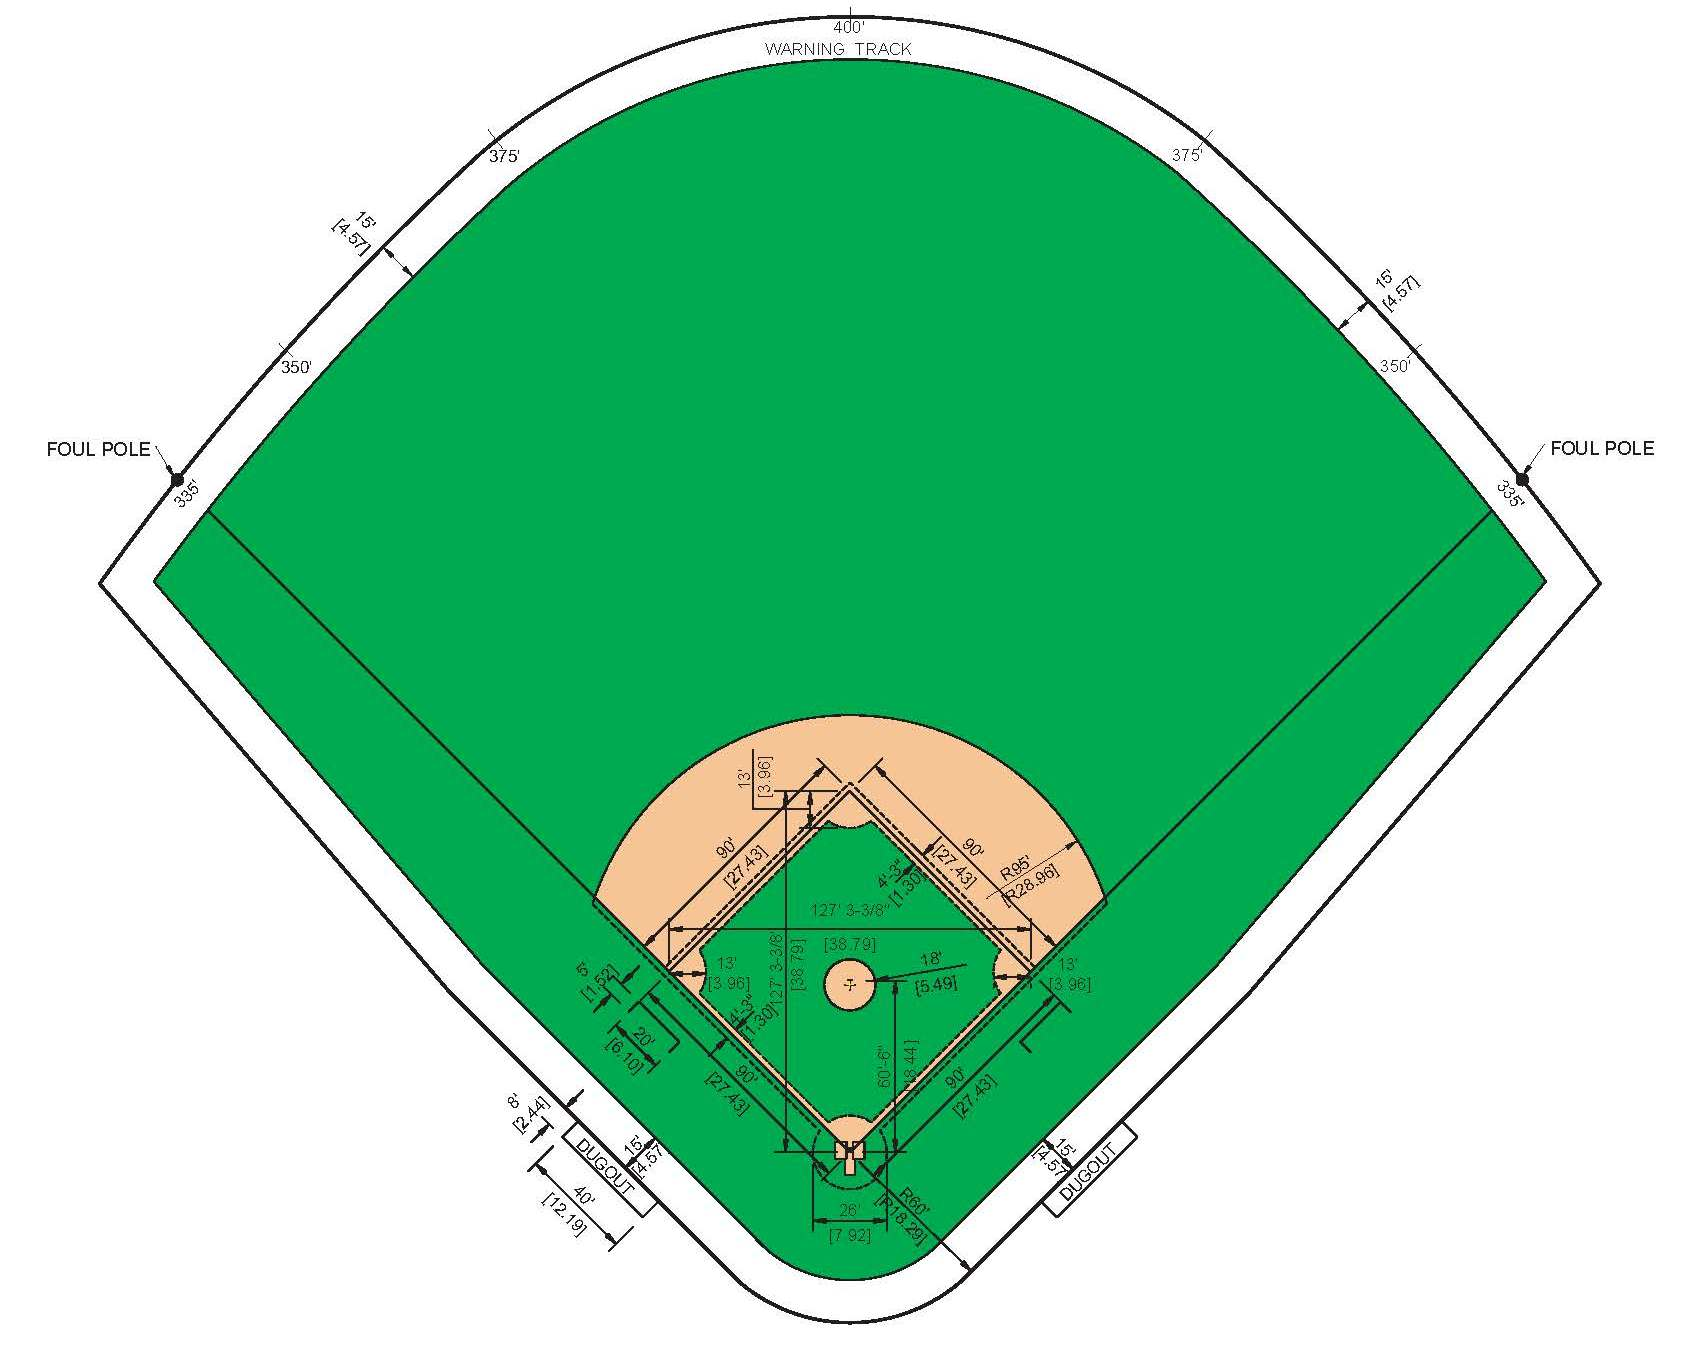 Baseball Field Layout By Position